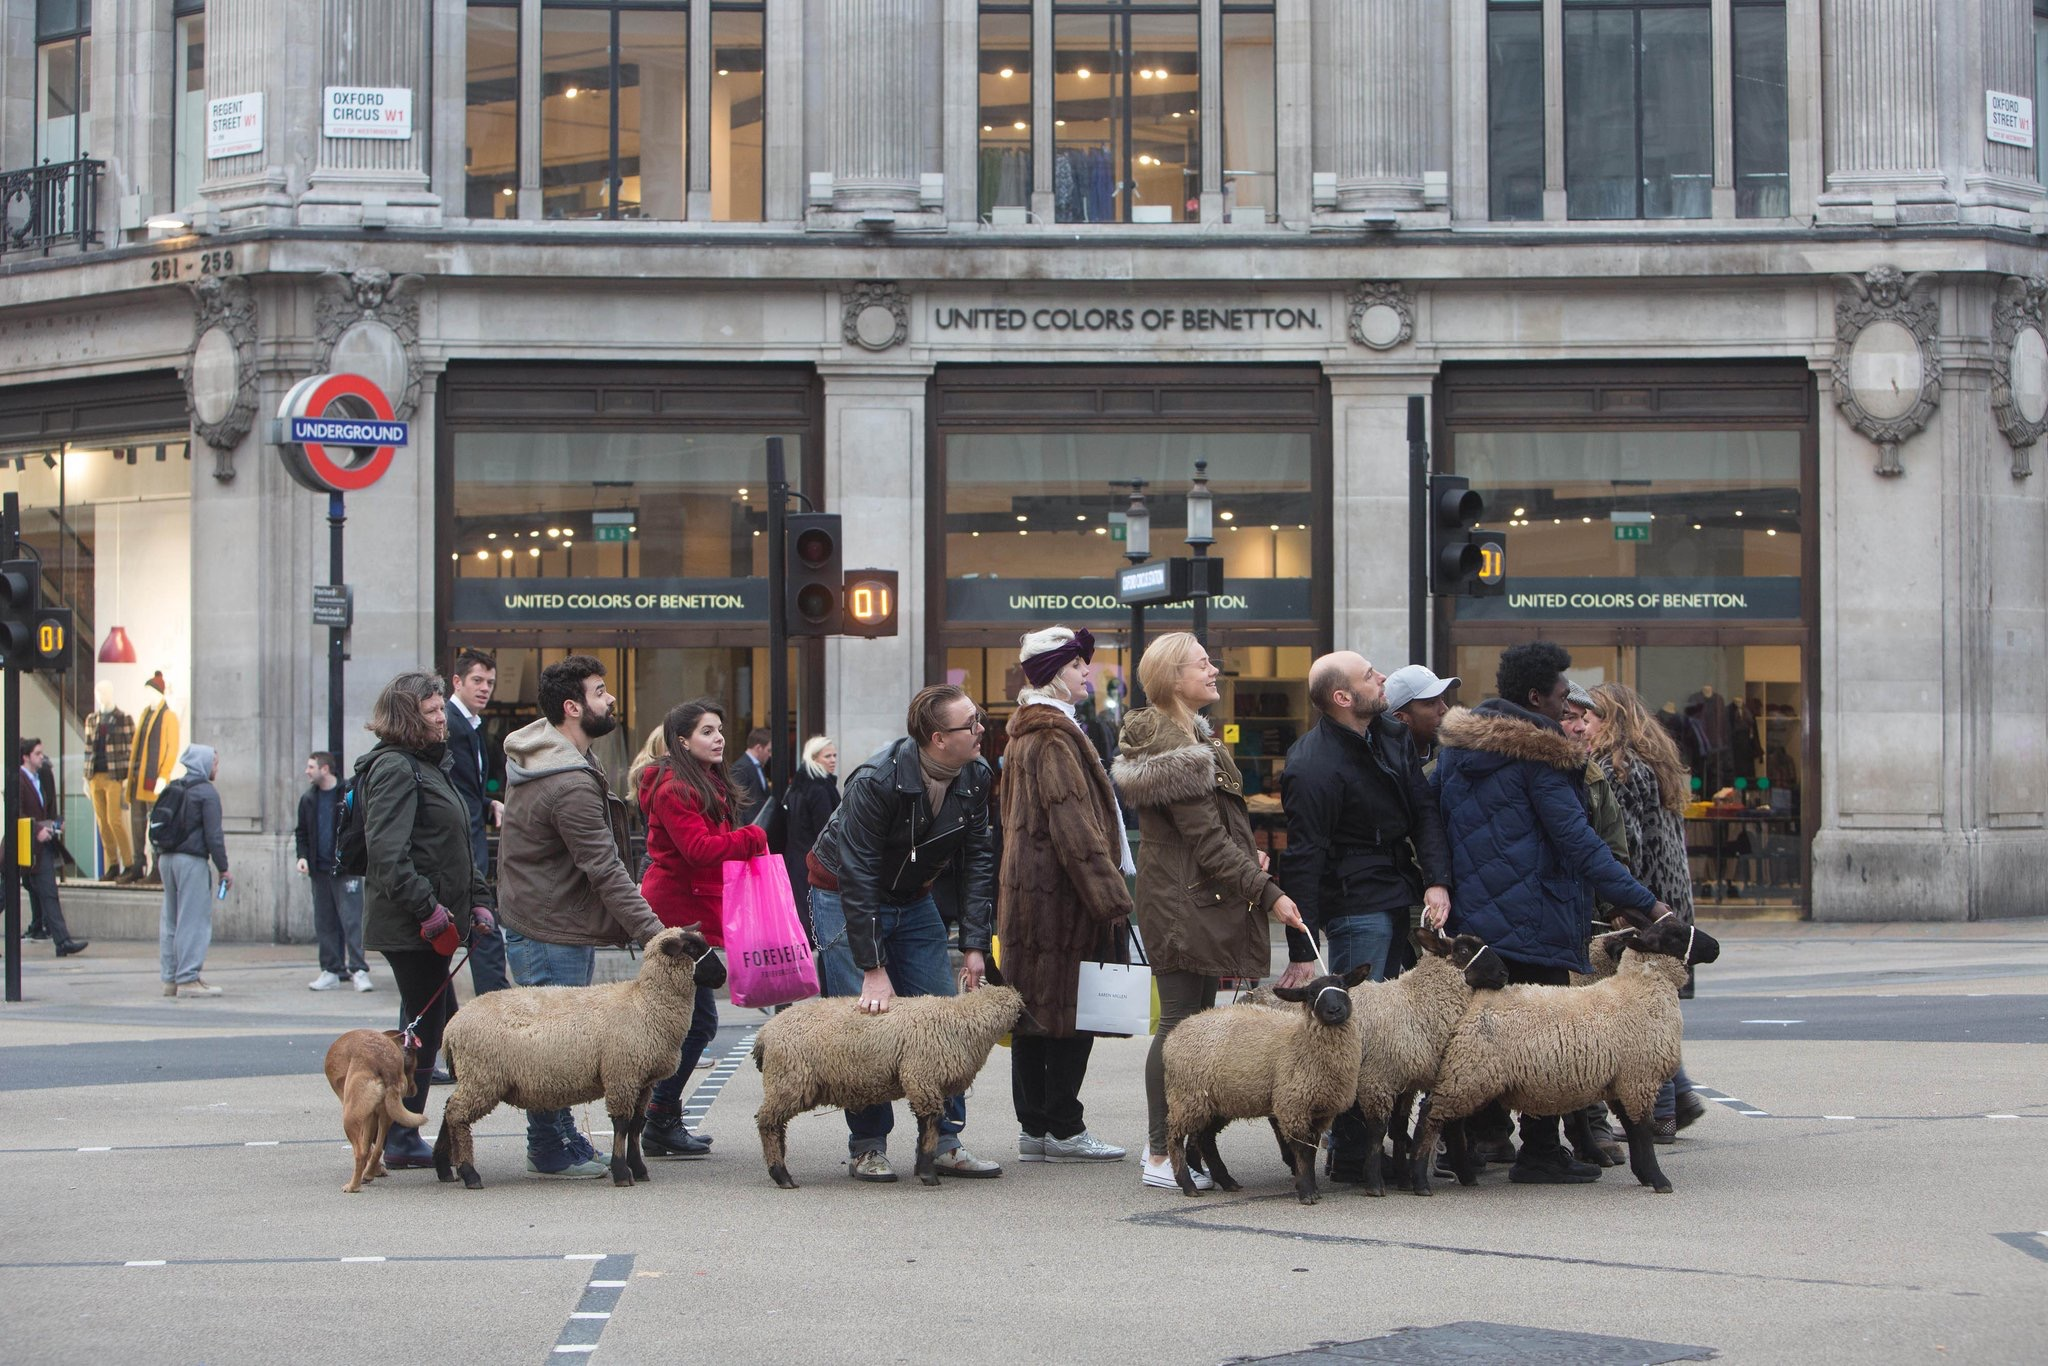 A group of people dressed as shoppers each holding a woolly sheep on a rope stand in the centre of a busy intersection at Oxford Circus.